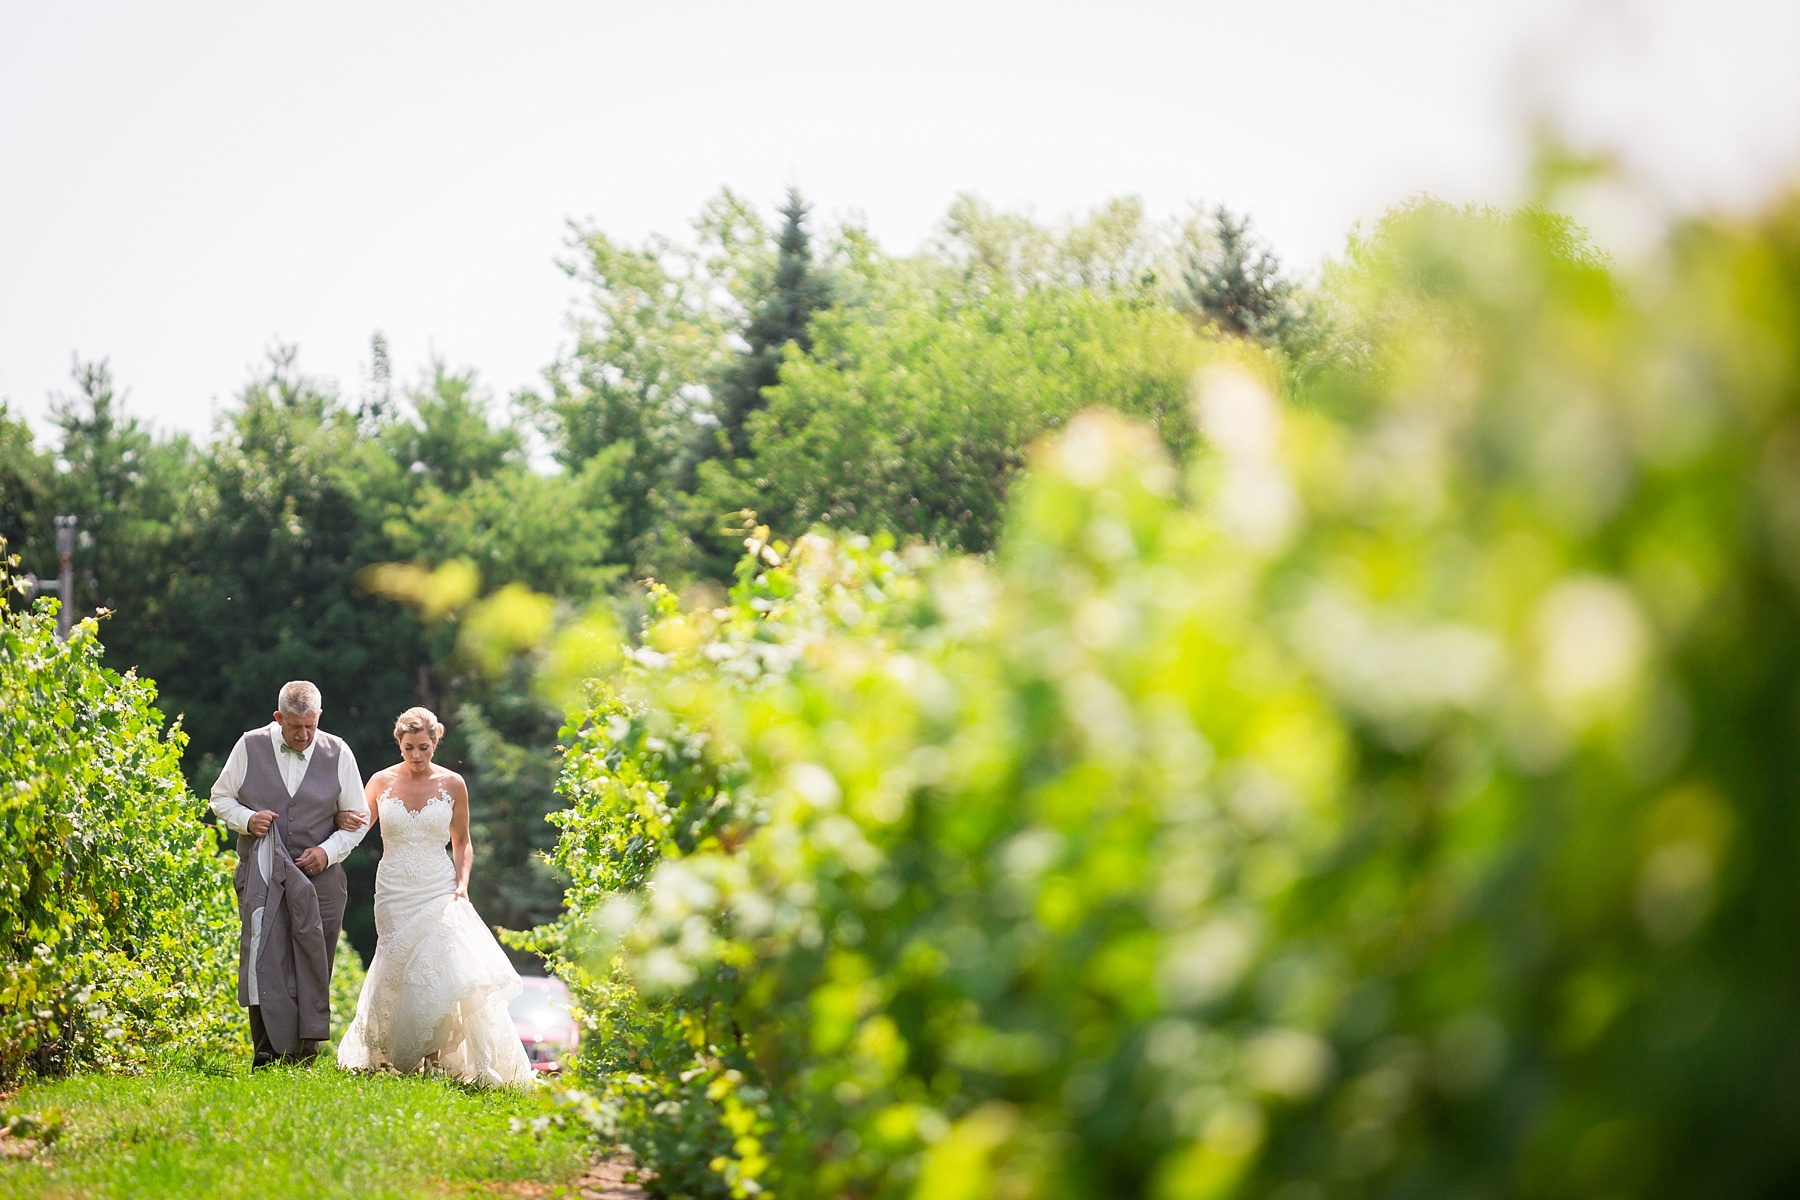 Brandon_Shafer_Photography_Lauren_Vasile_Ciccone_Vineyard_Suttons_Bay_Wedding_0015.jpg